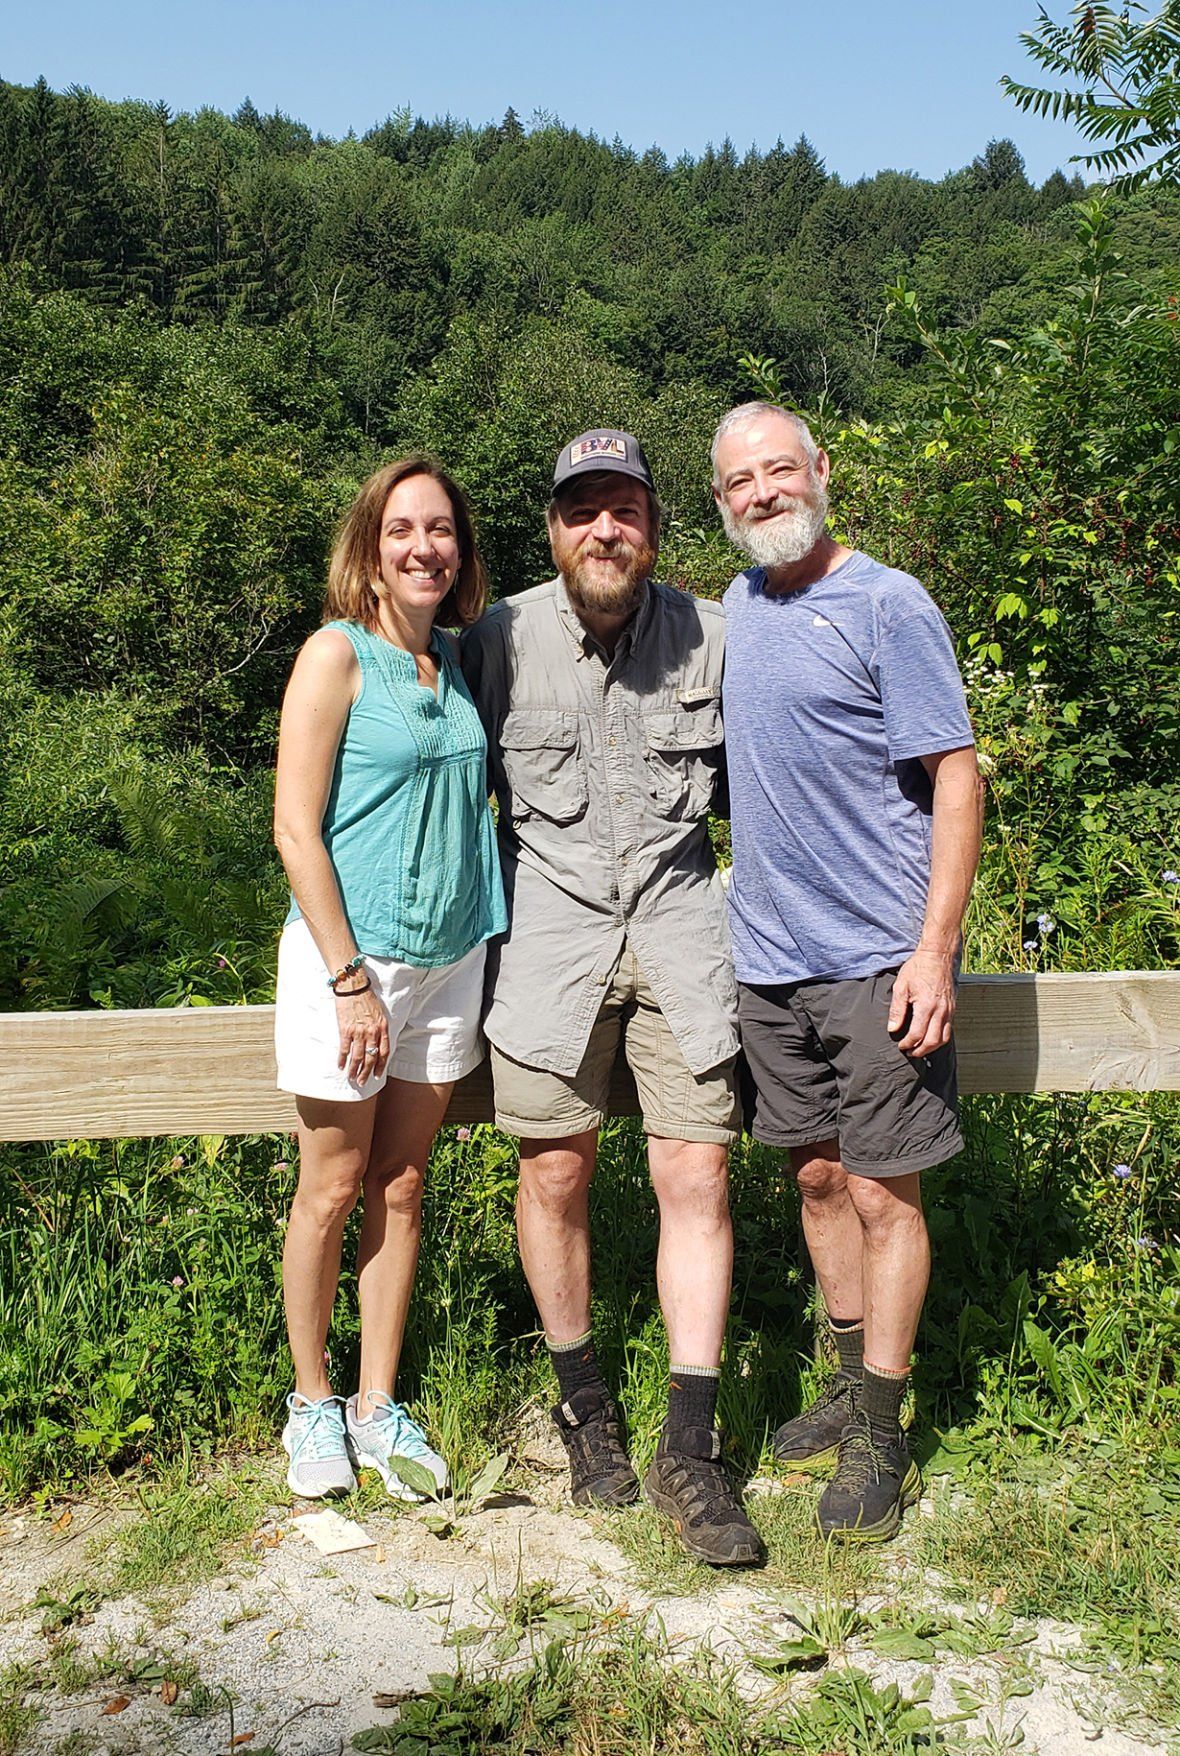 Watertown: Resident Hikes the Appalachian Trail